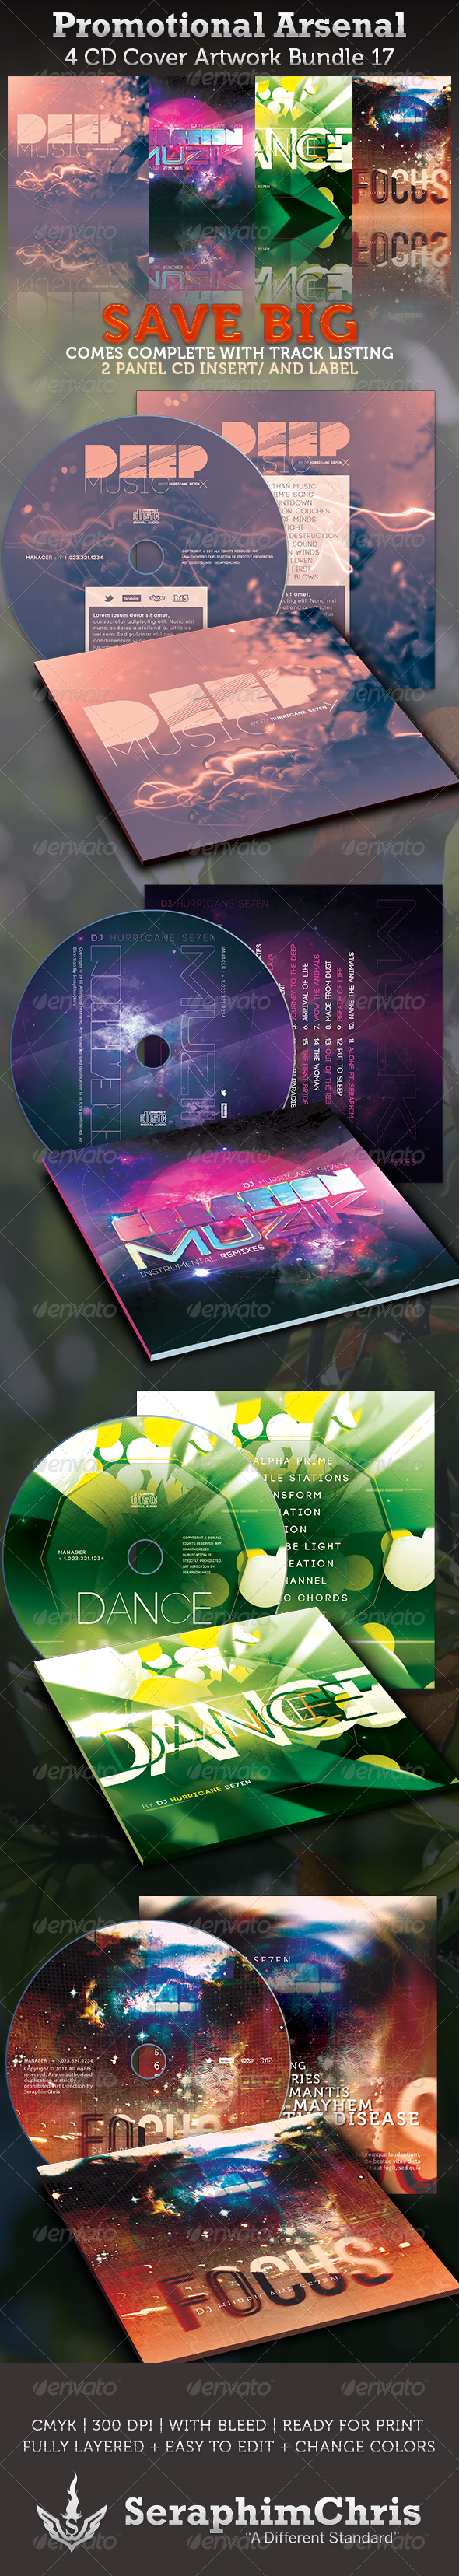 Promotional Arsenal CD Cover Artwork Bundle 17 - CD & DVD Artwork Print Templates